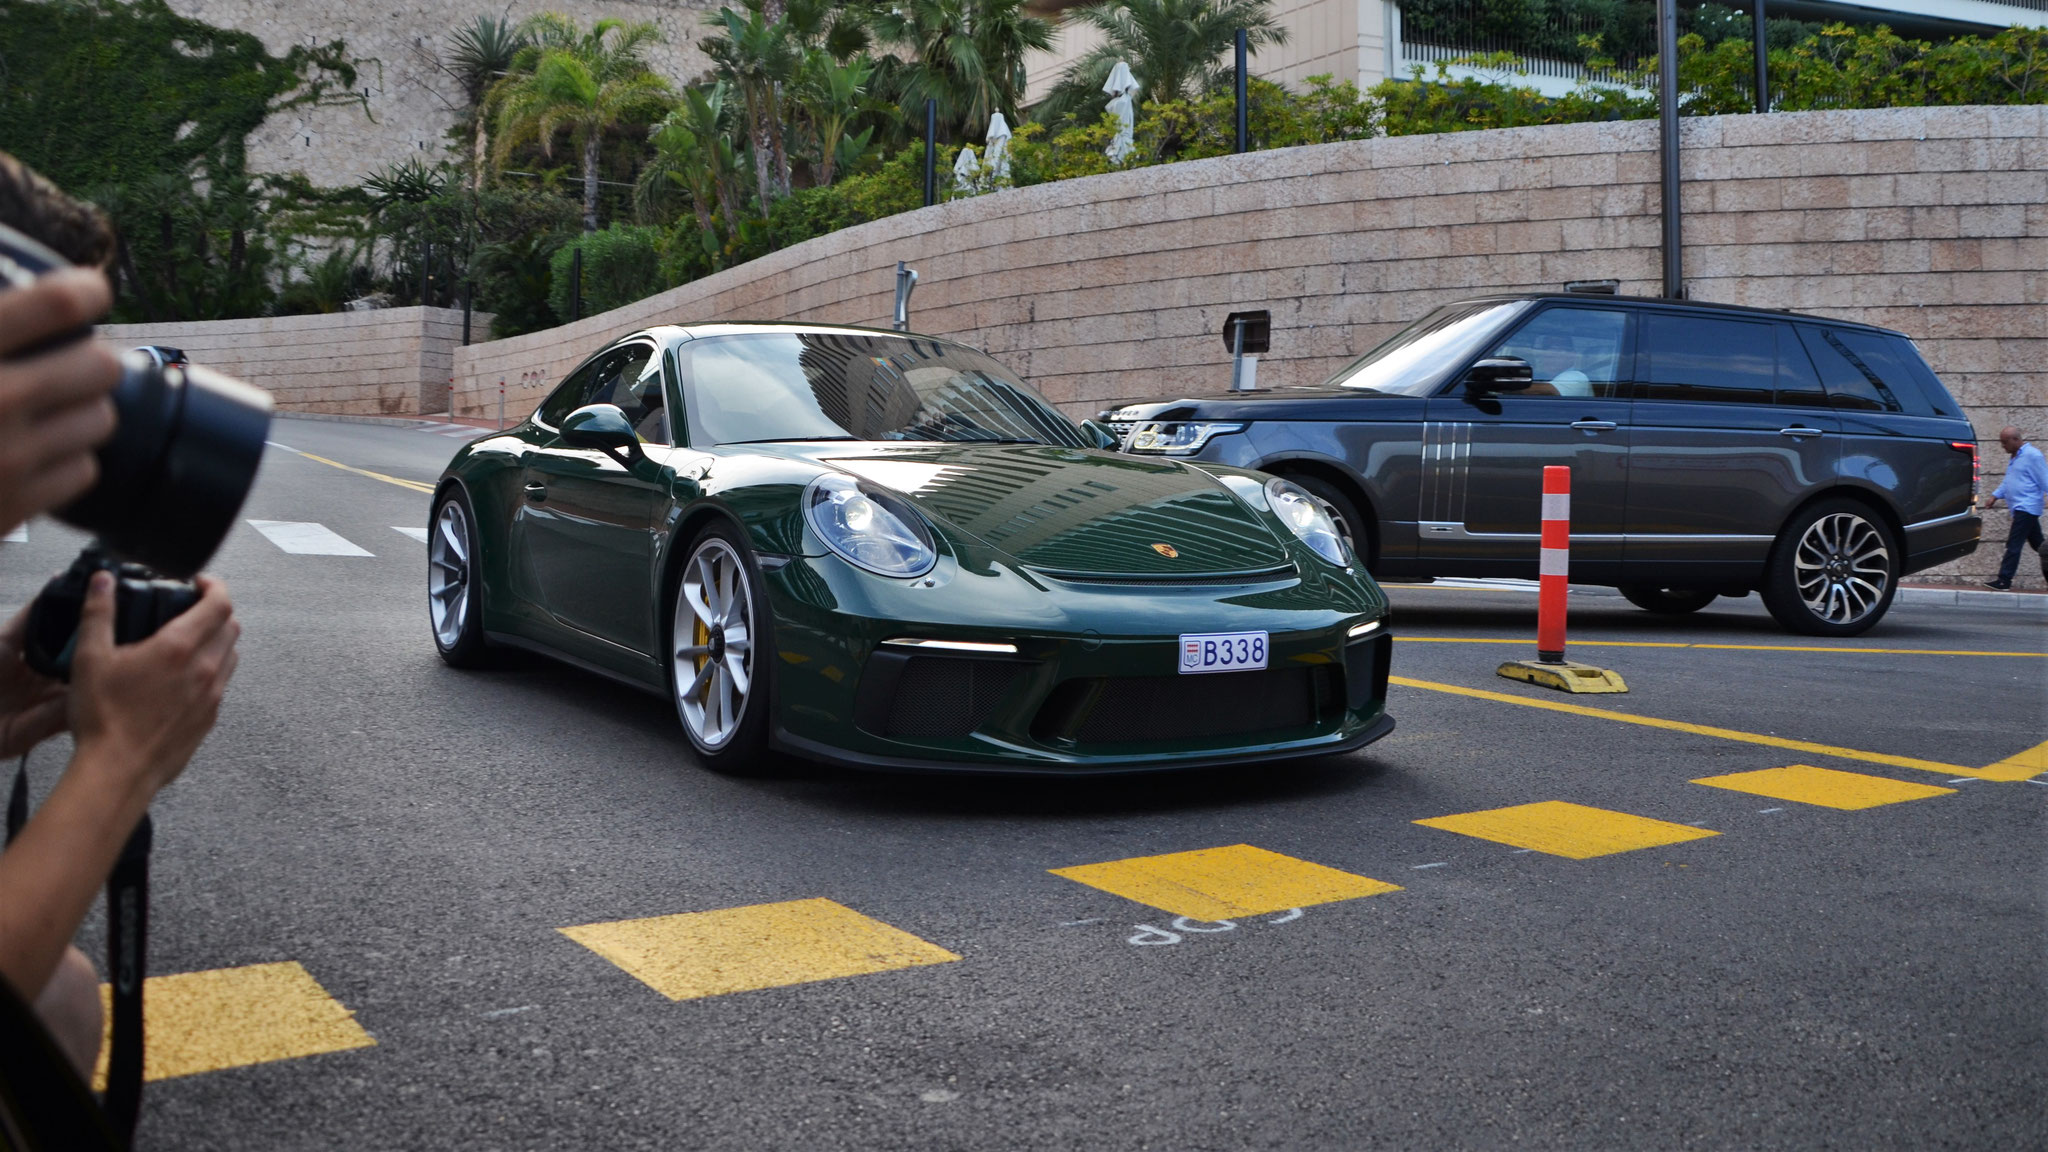 Porsche 991 GT3 Touring Package - B338 (MC)